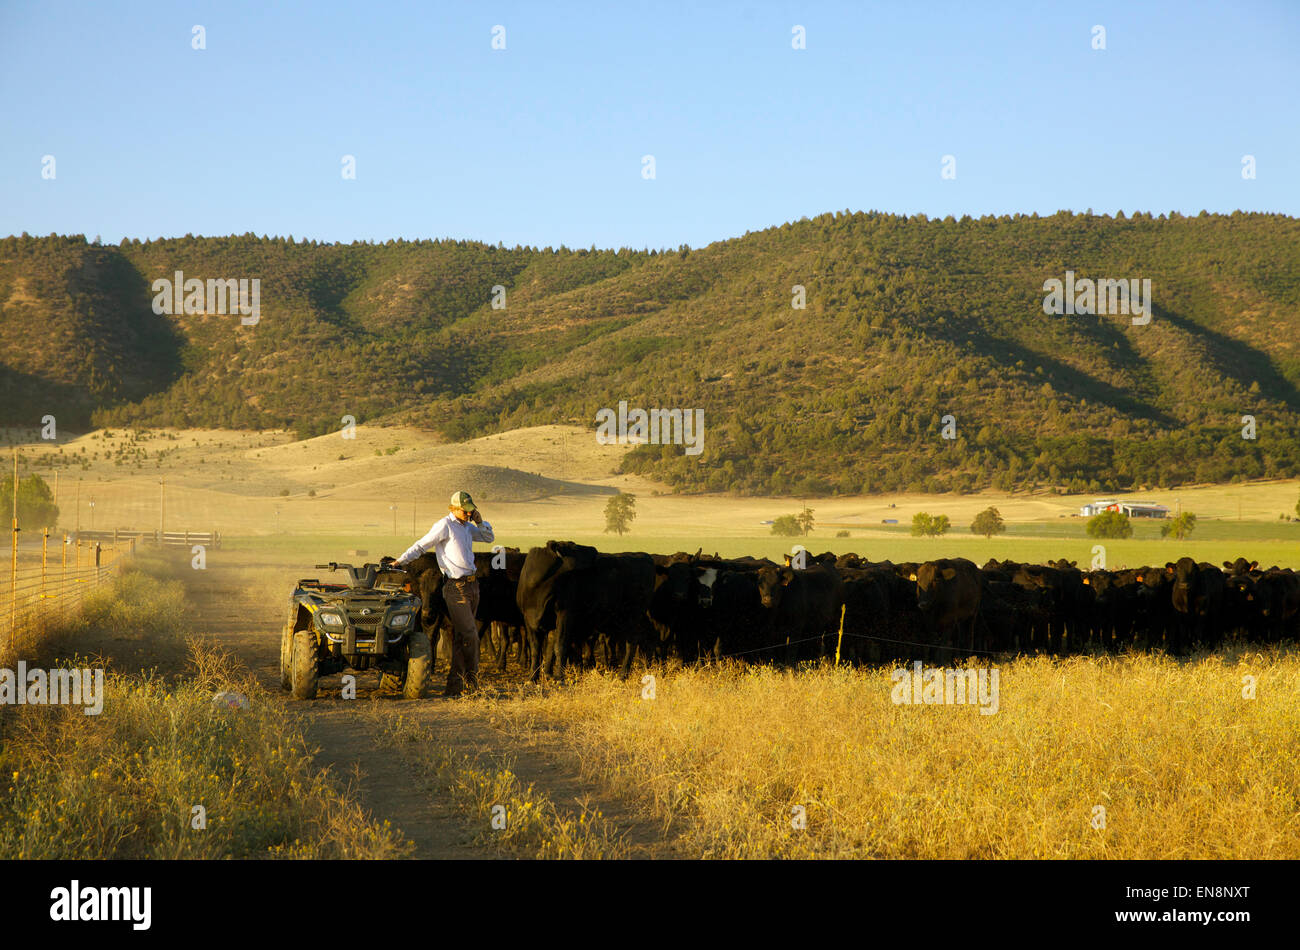 A cowboy makes a phone call while he moves a heard of cattle from one field to the next. - Stock Image